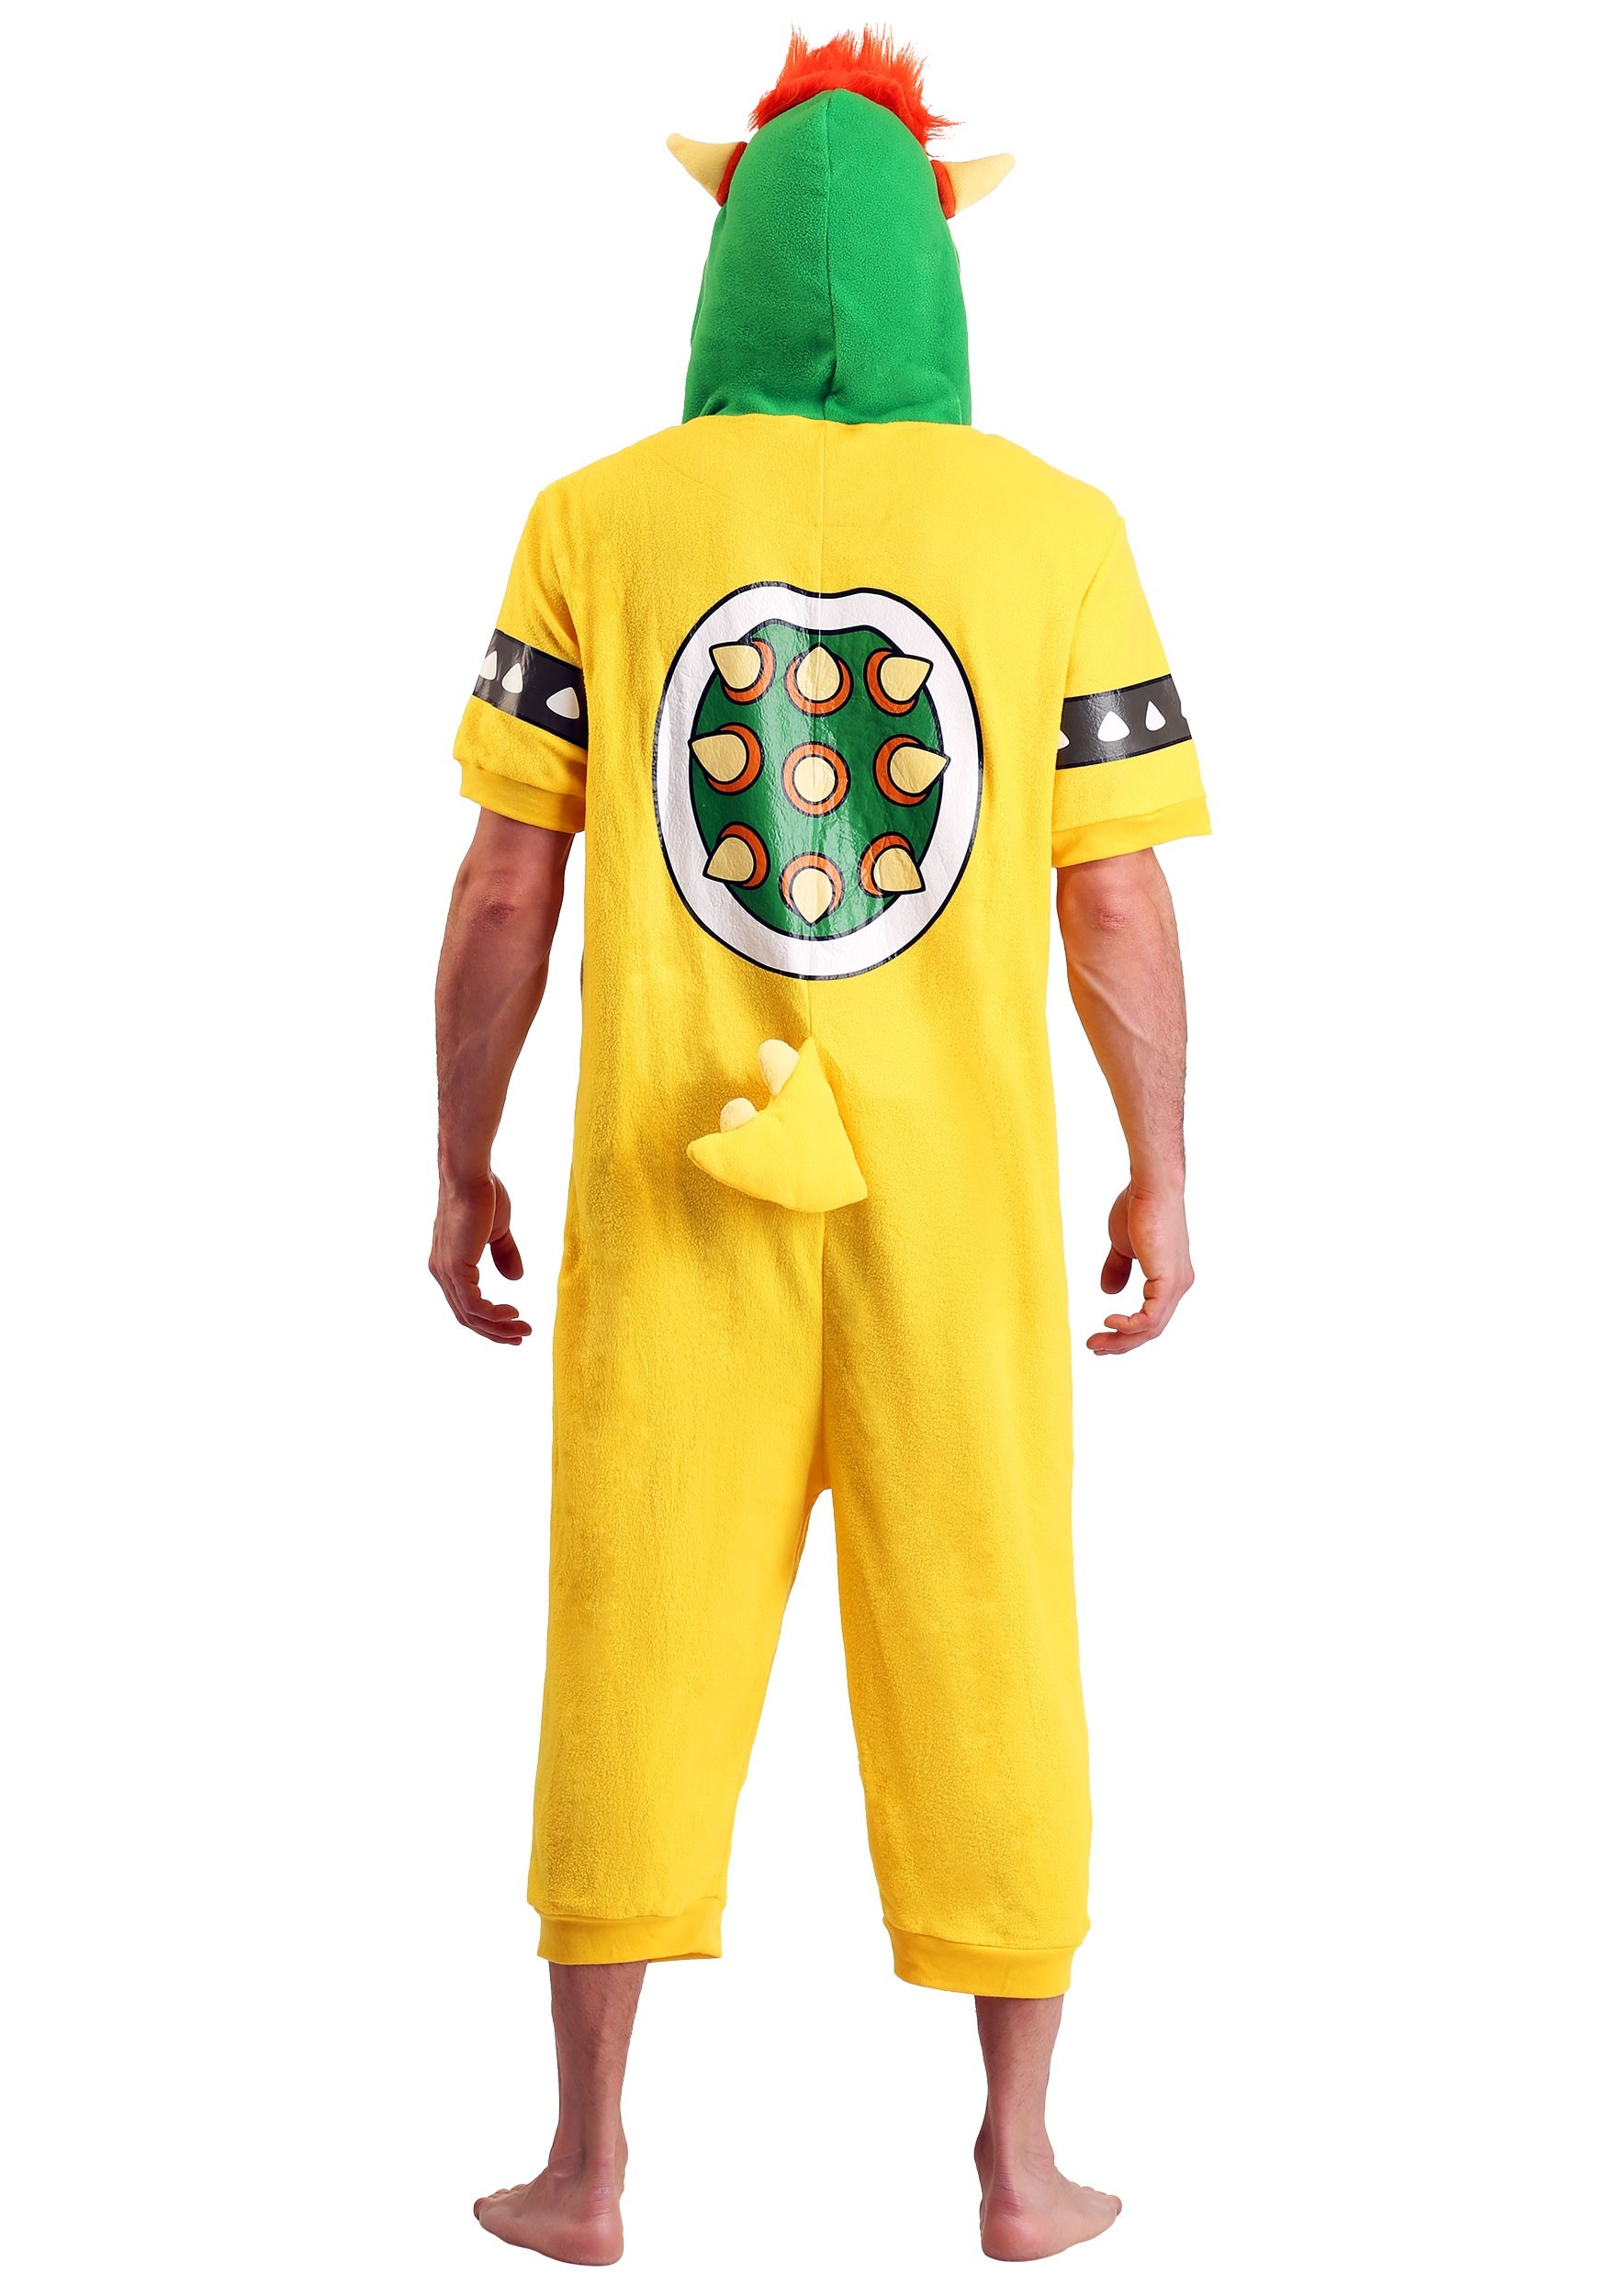 06897f4b752 Bowser Cosplay Romper for Adults